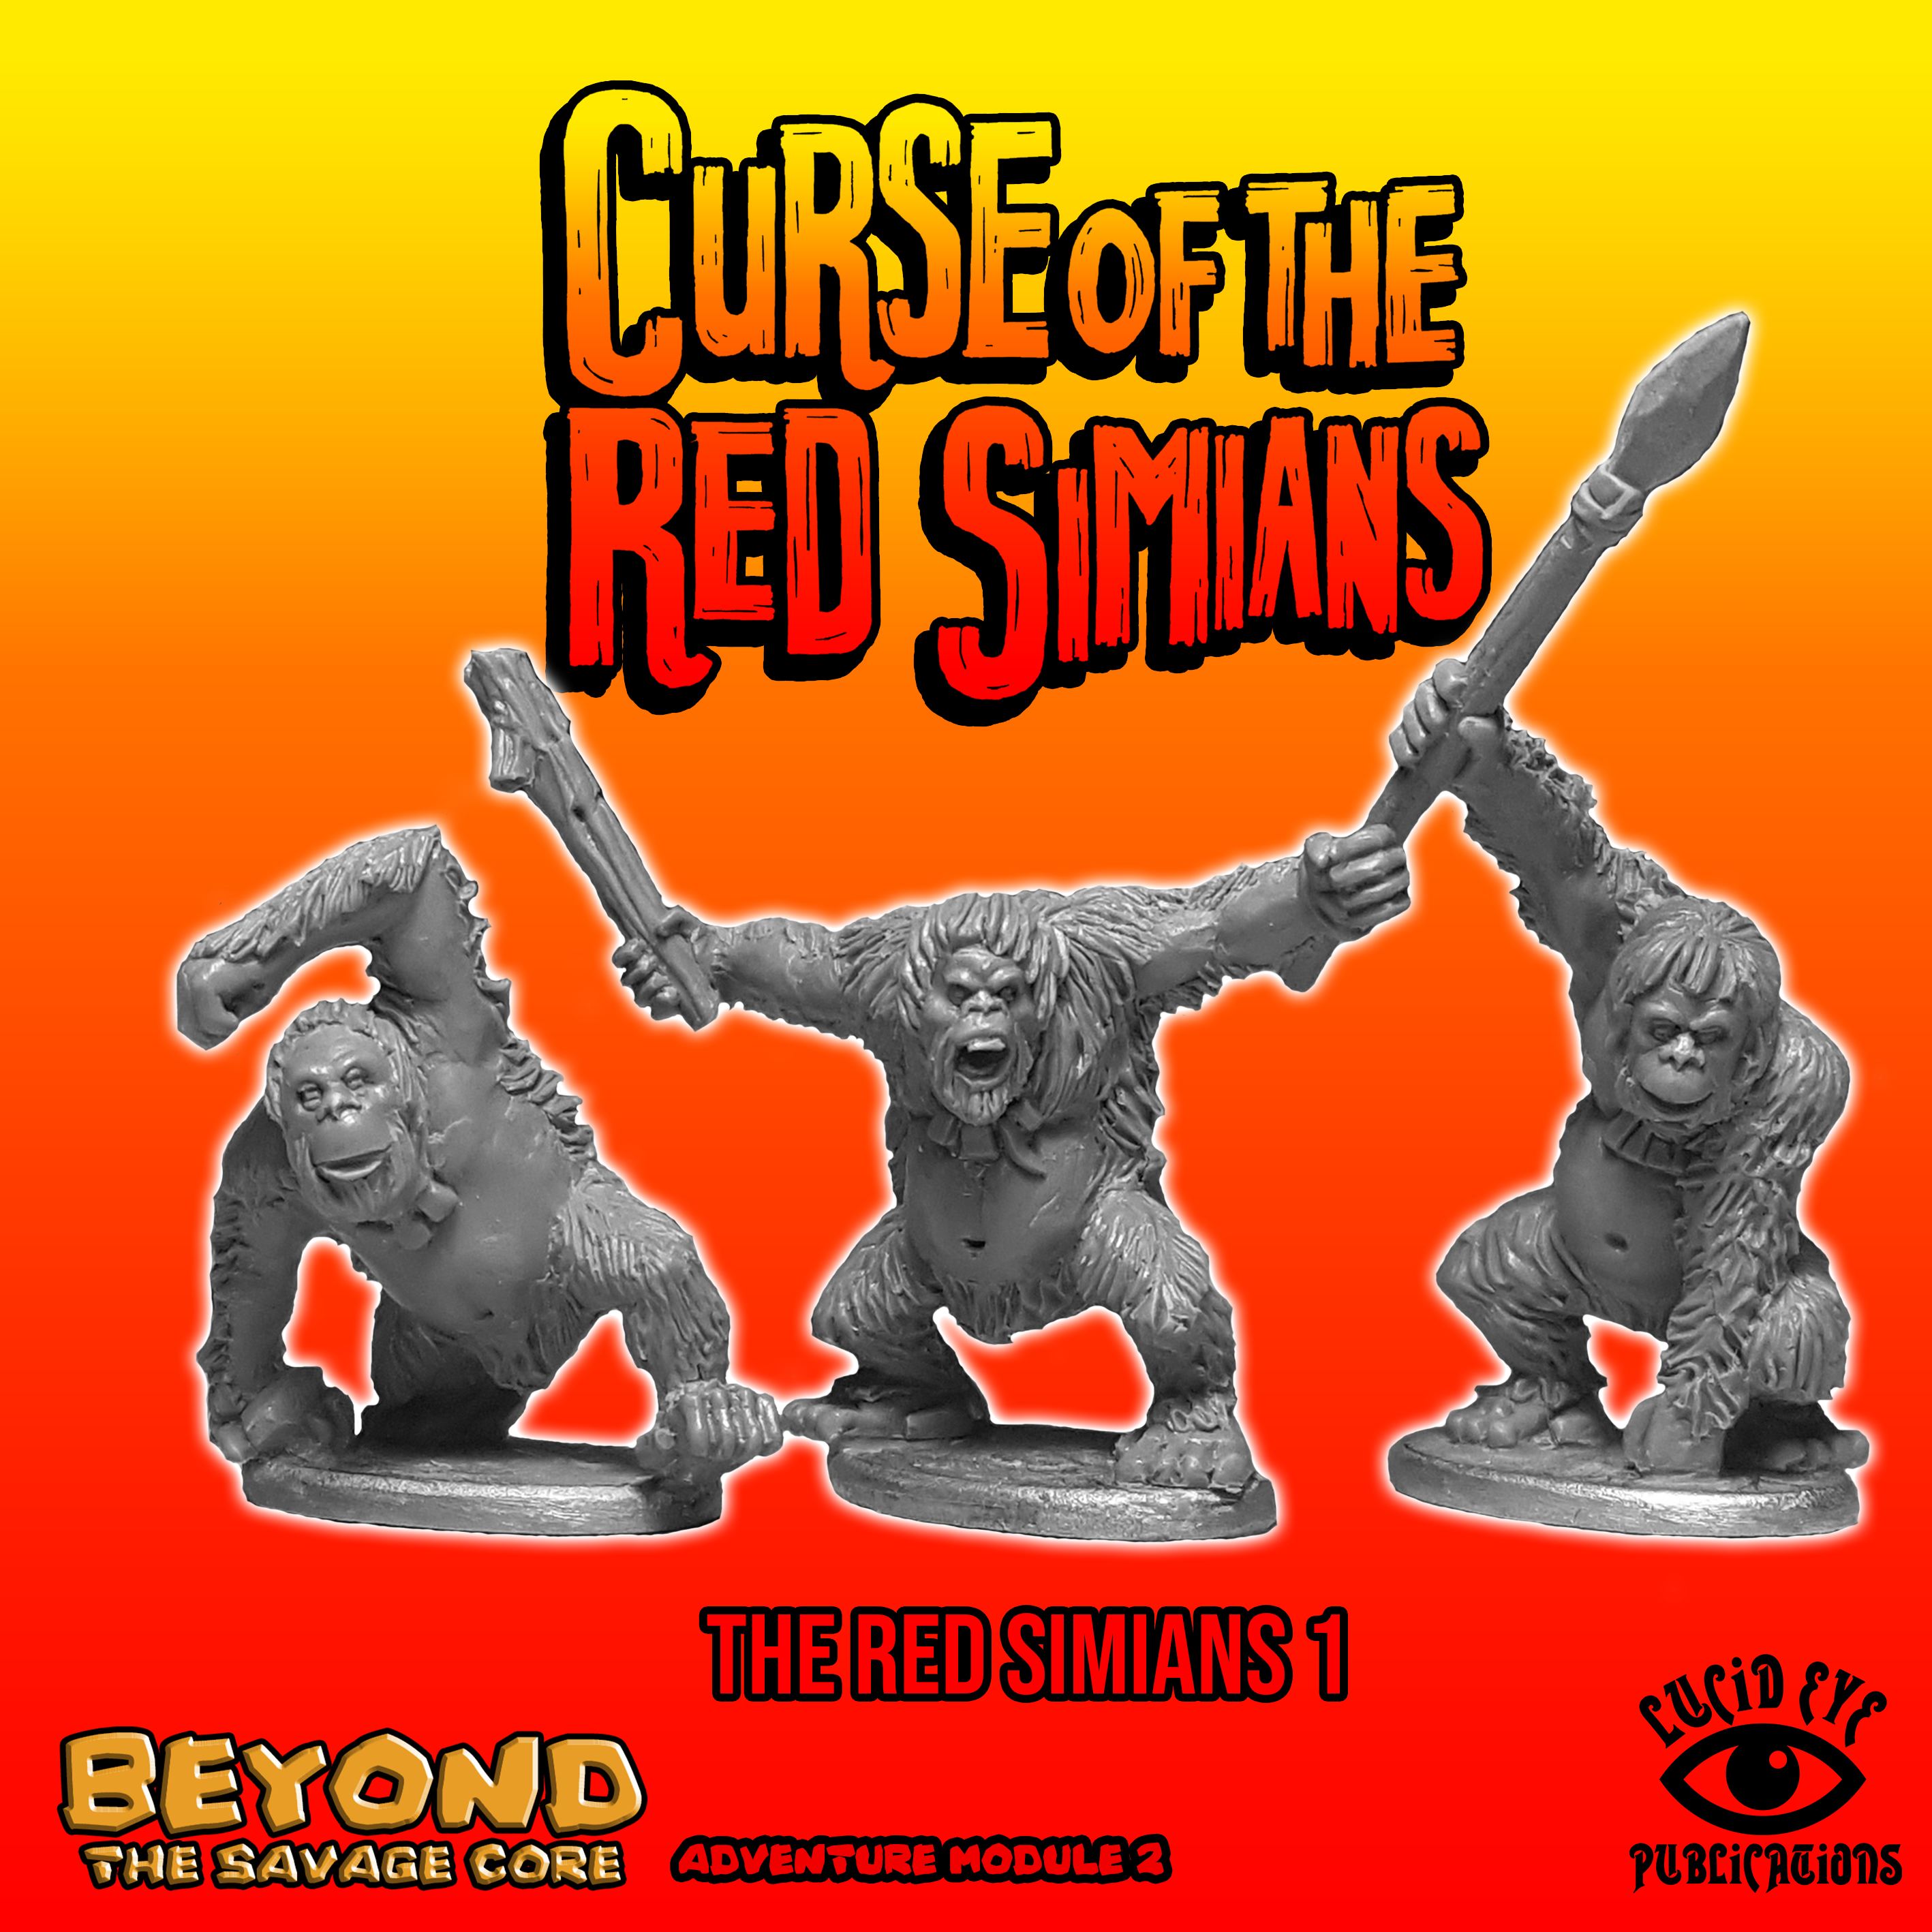 The Red Simians 1